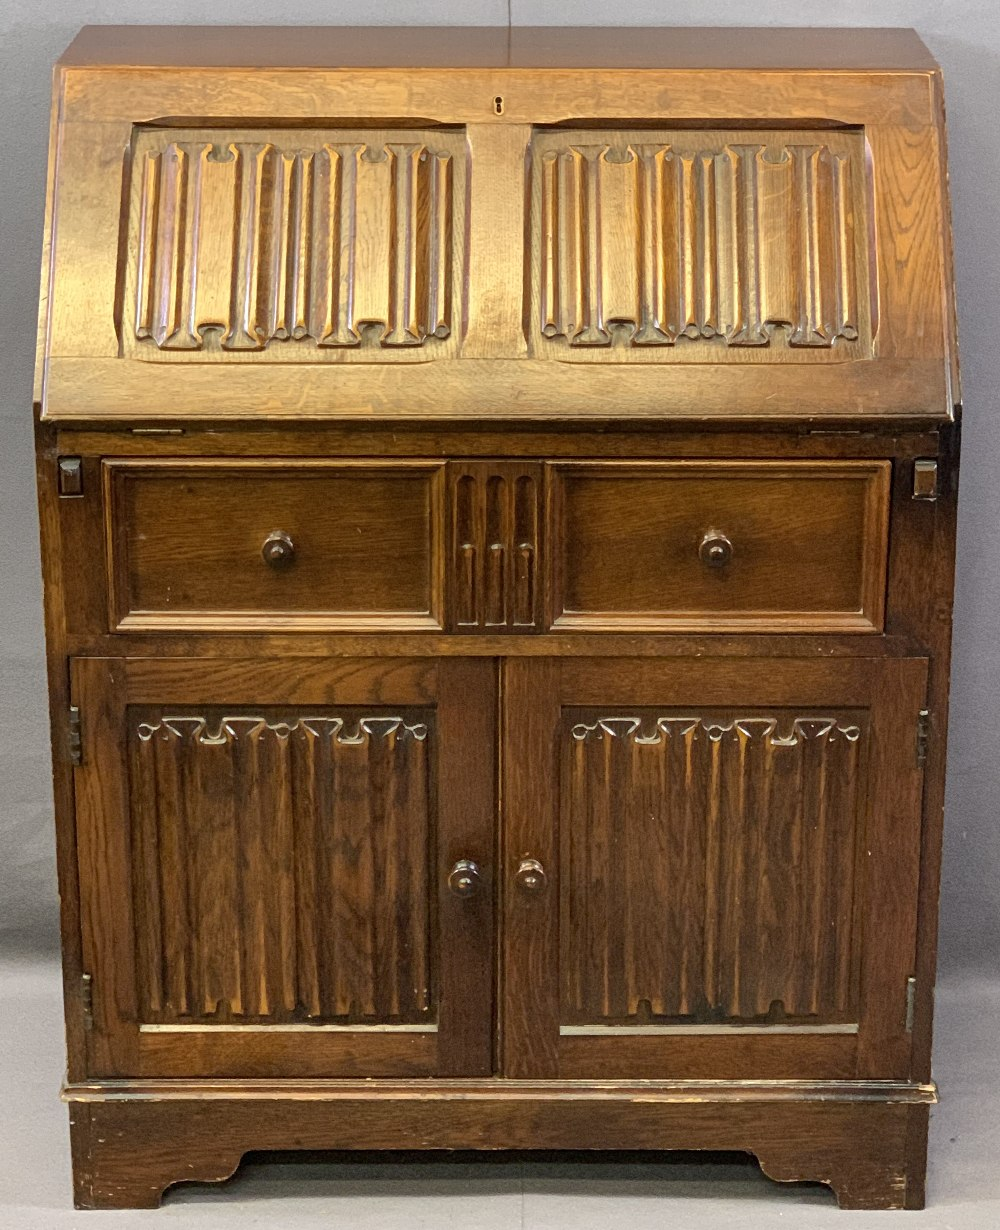 PRIORY STYLE OAK LINENFOLD CARVED FALL-FRONT BUREAU, the fall interior with a fitted arrangement